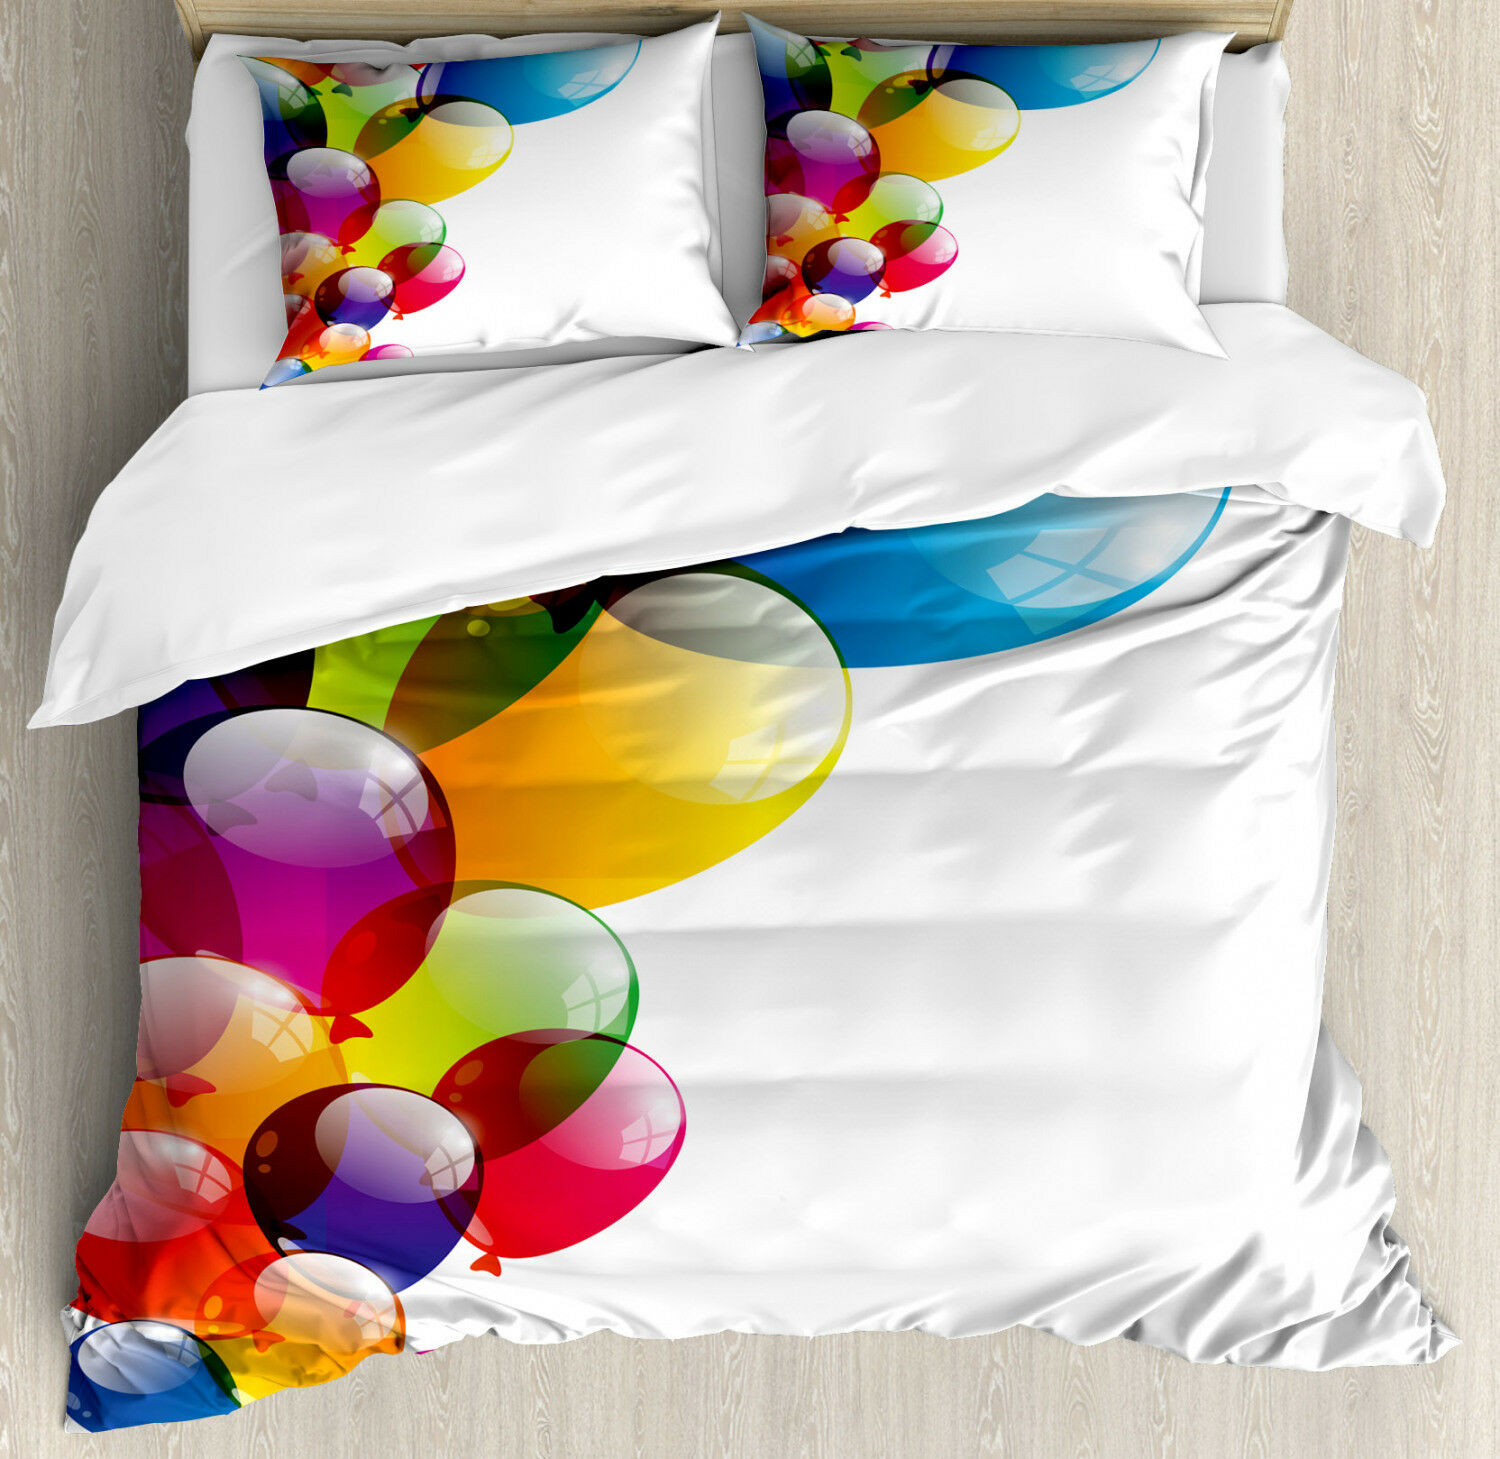 Coloreeful Duvet Cover Set with Pillow Shams Vibrant Balloons Joy Print